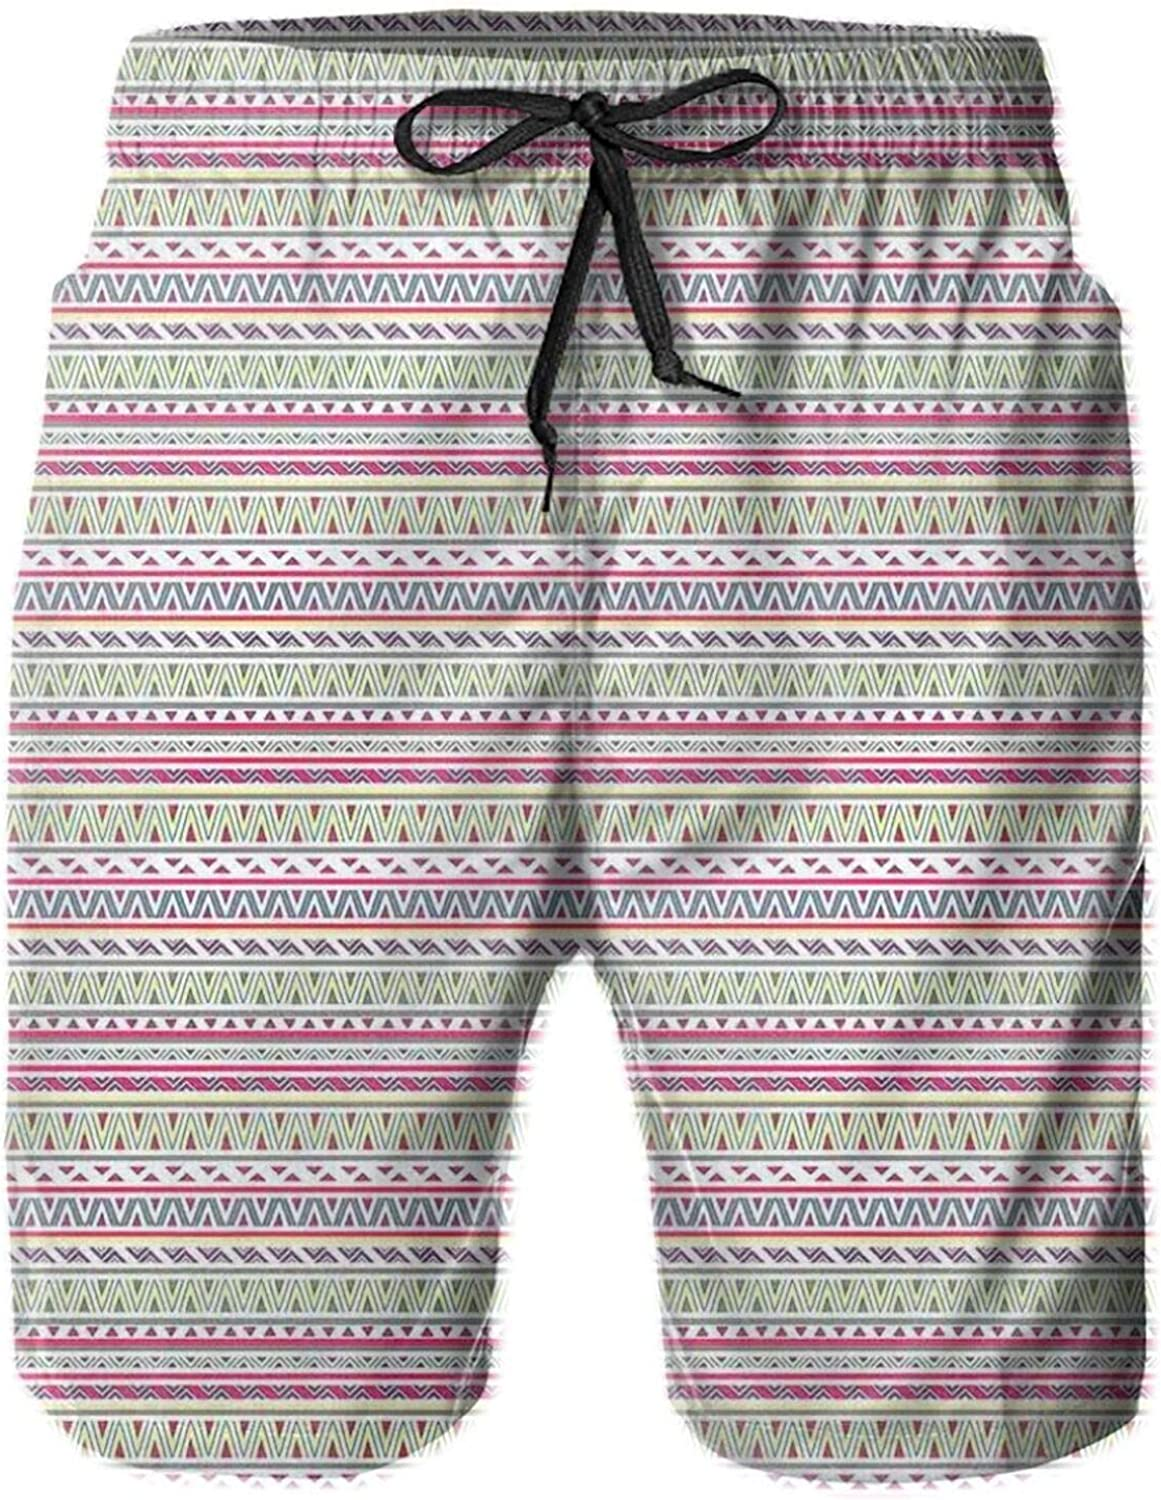 Ethnic Stripes with Triangles Arrows Abstract Geometric Composition Drawstring Waist Beach Shorts for Men Swim Trucks Board Shorts with Mesh Lining,L